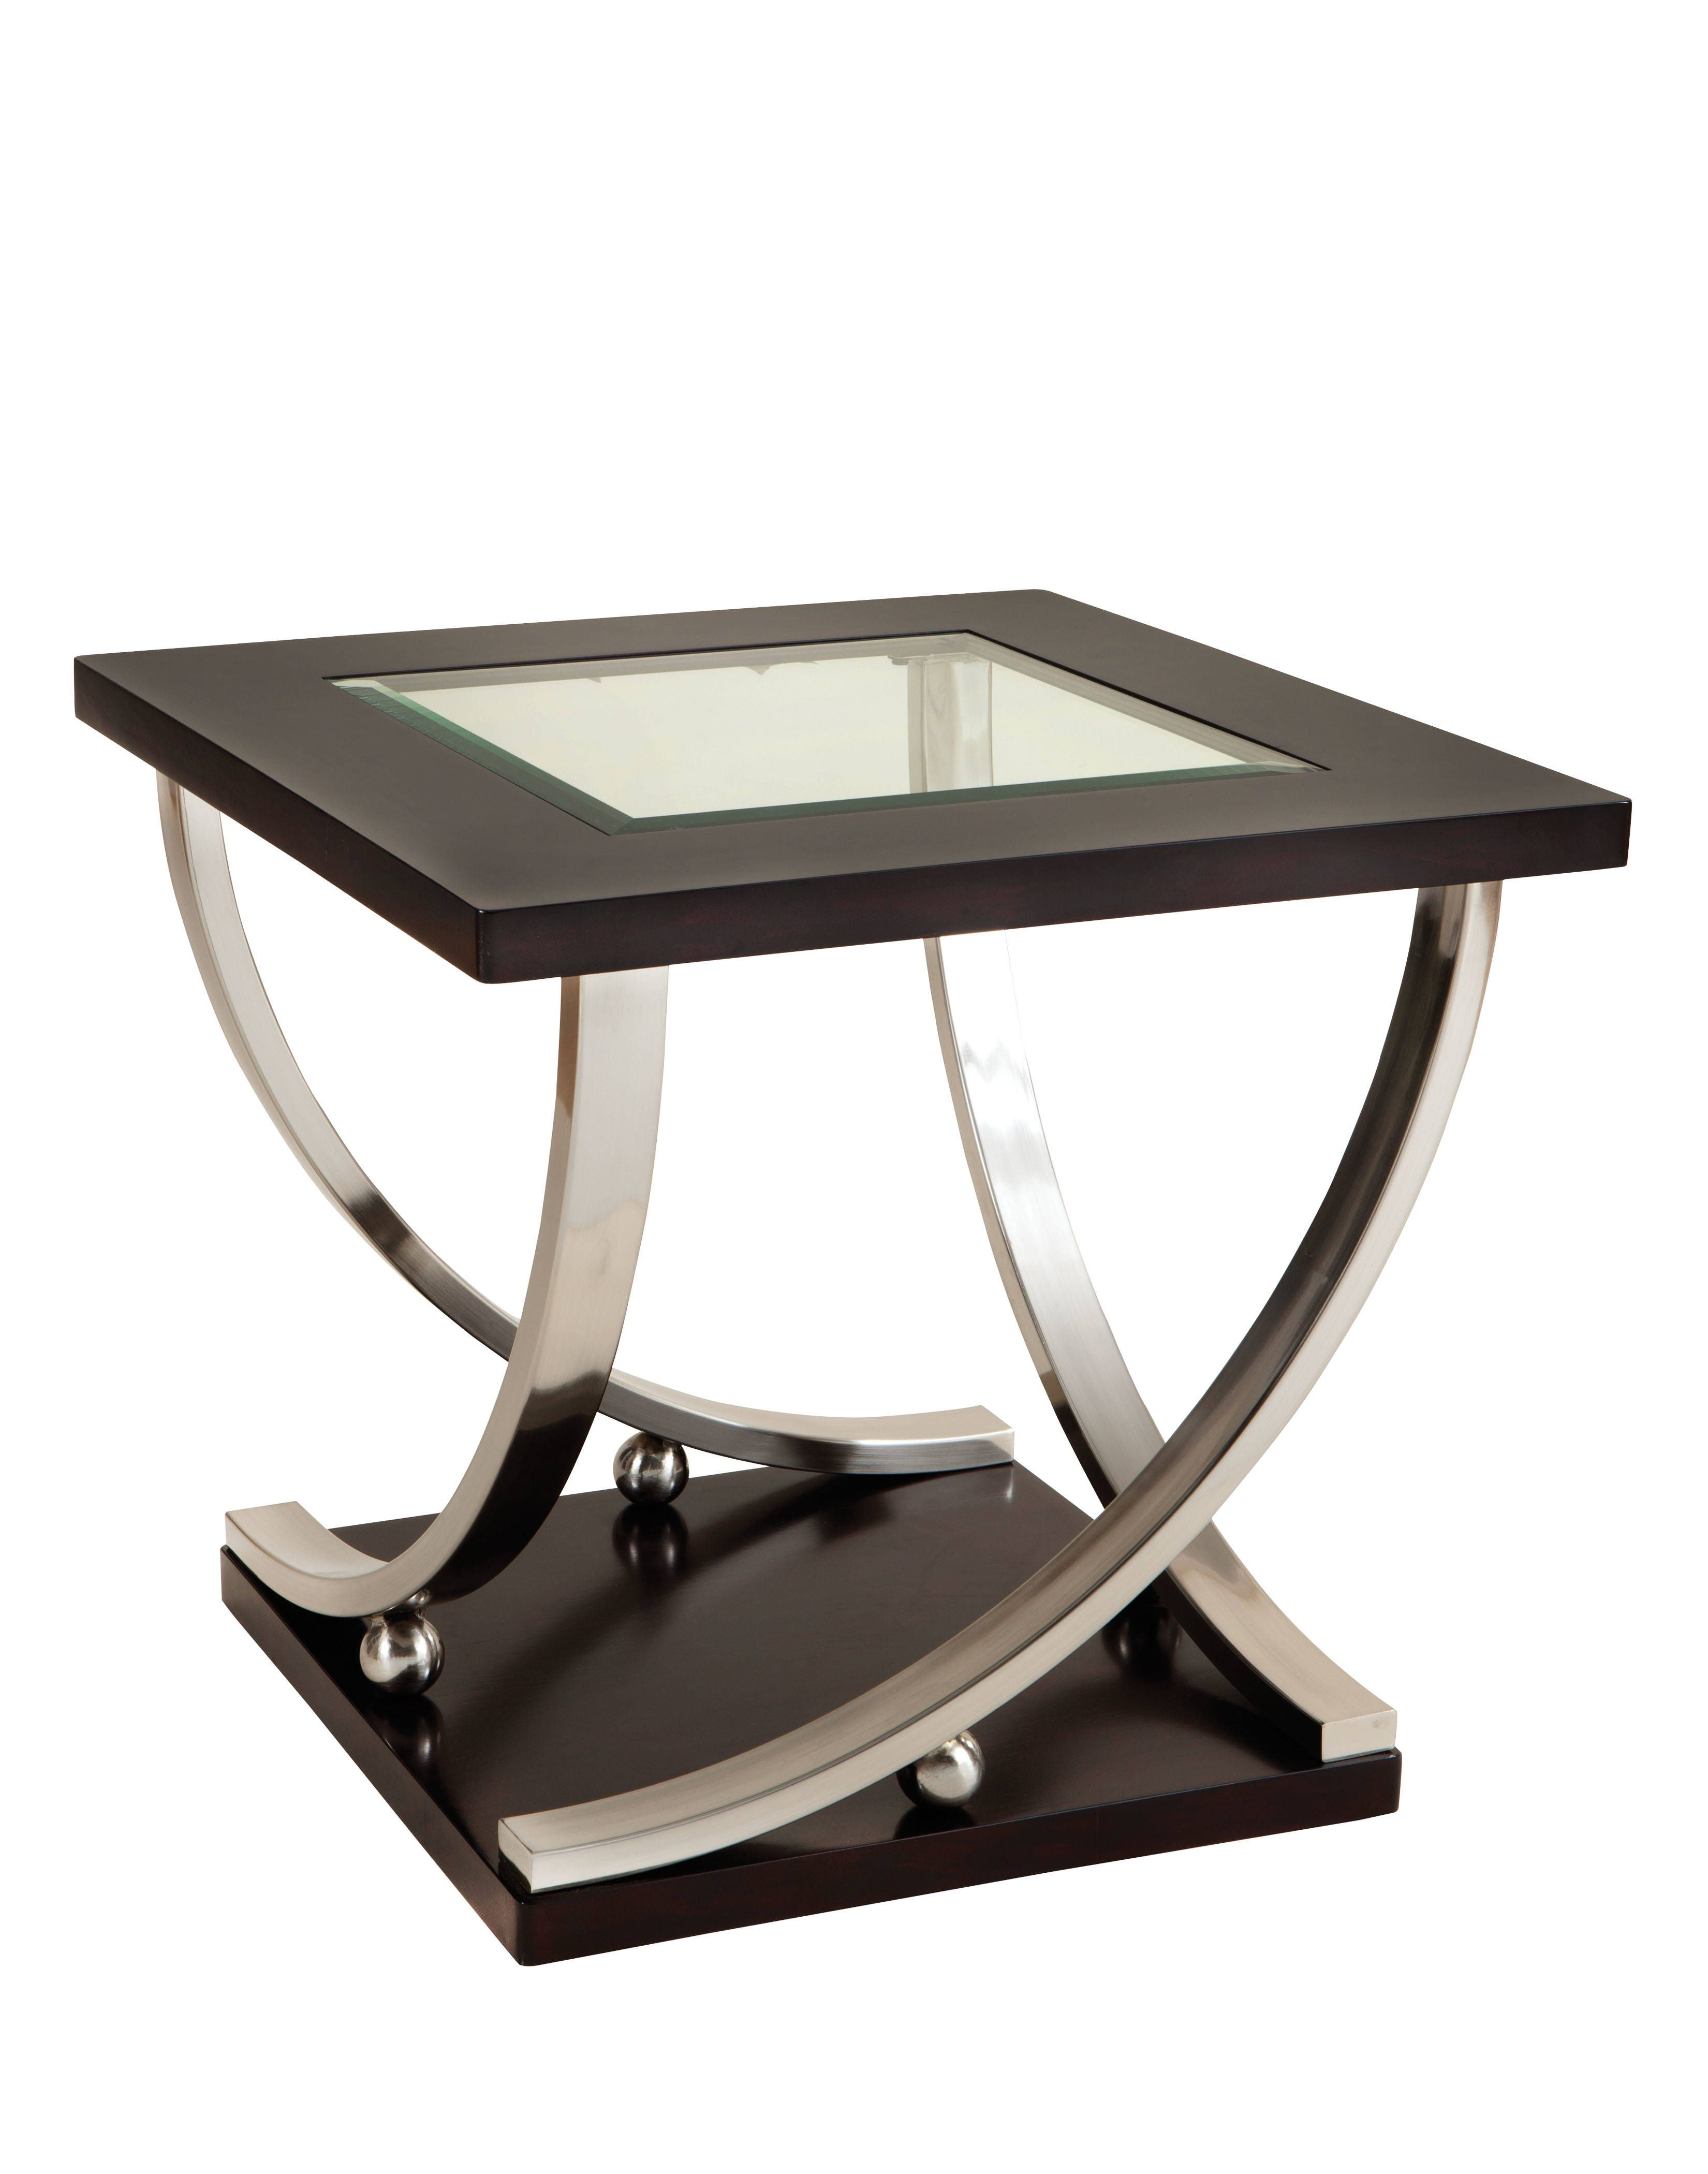 Standard Furniture Melrose Glass End Table | Modern, Glass and Metals